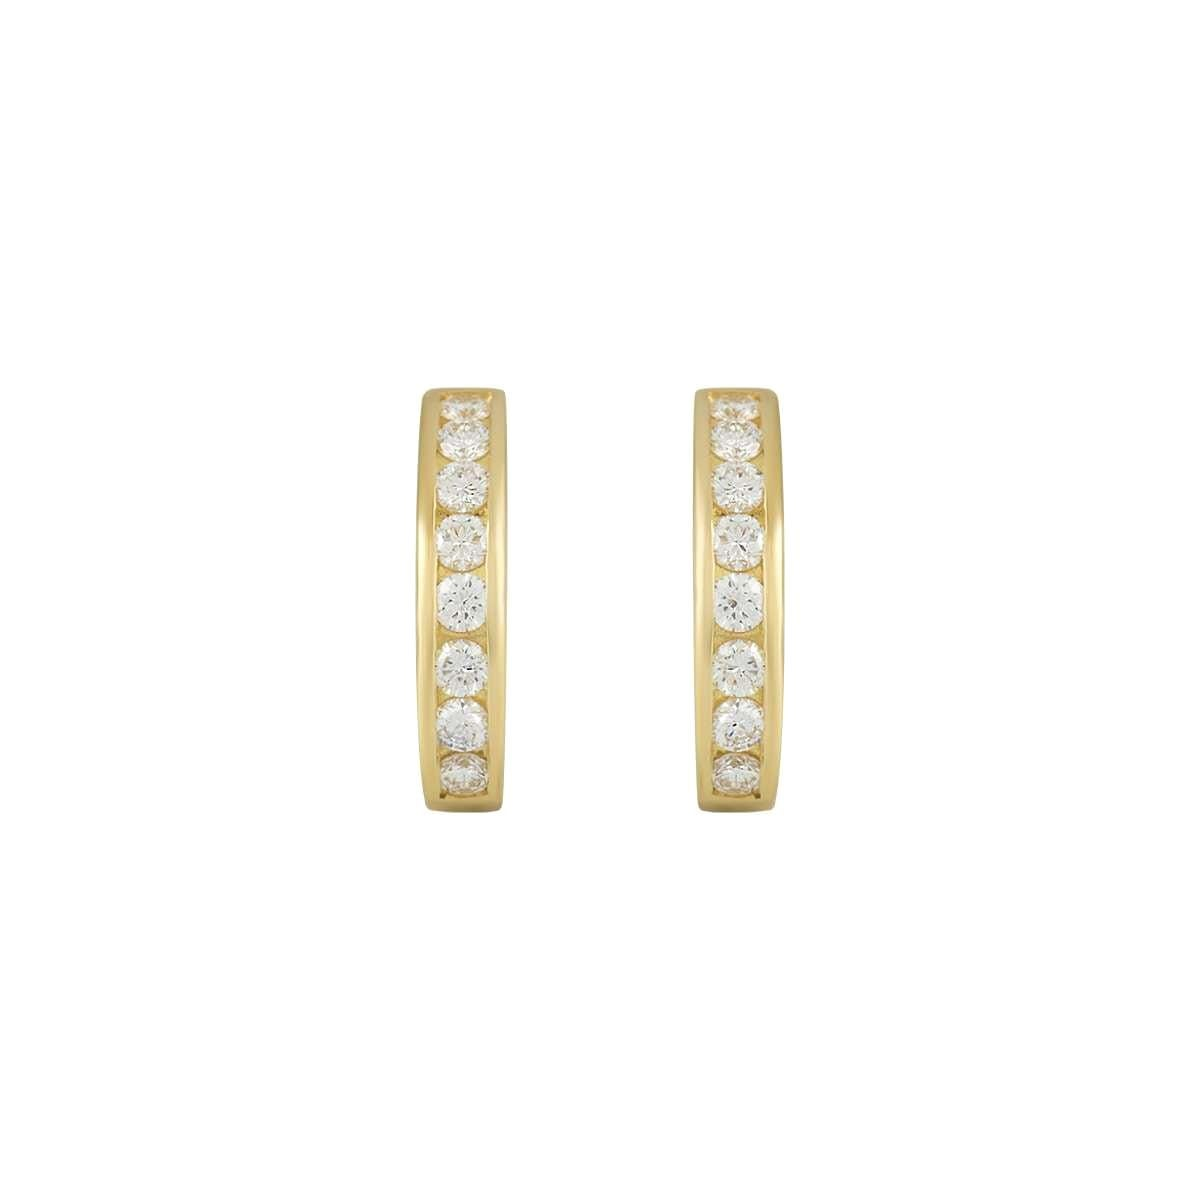 Tiffany & Co. Diamond Hoop Earrings 0.96 Carat